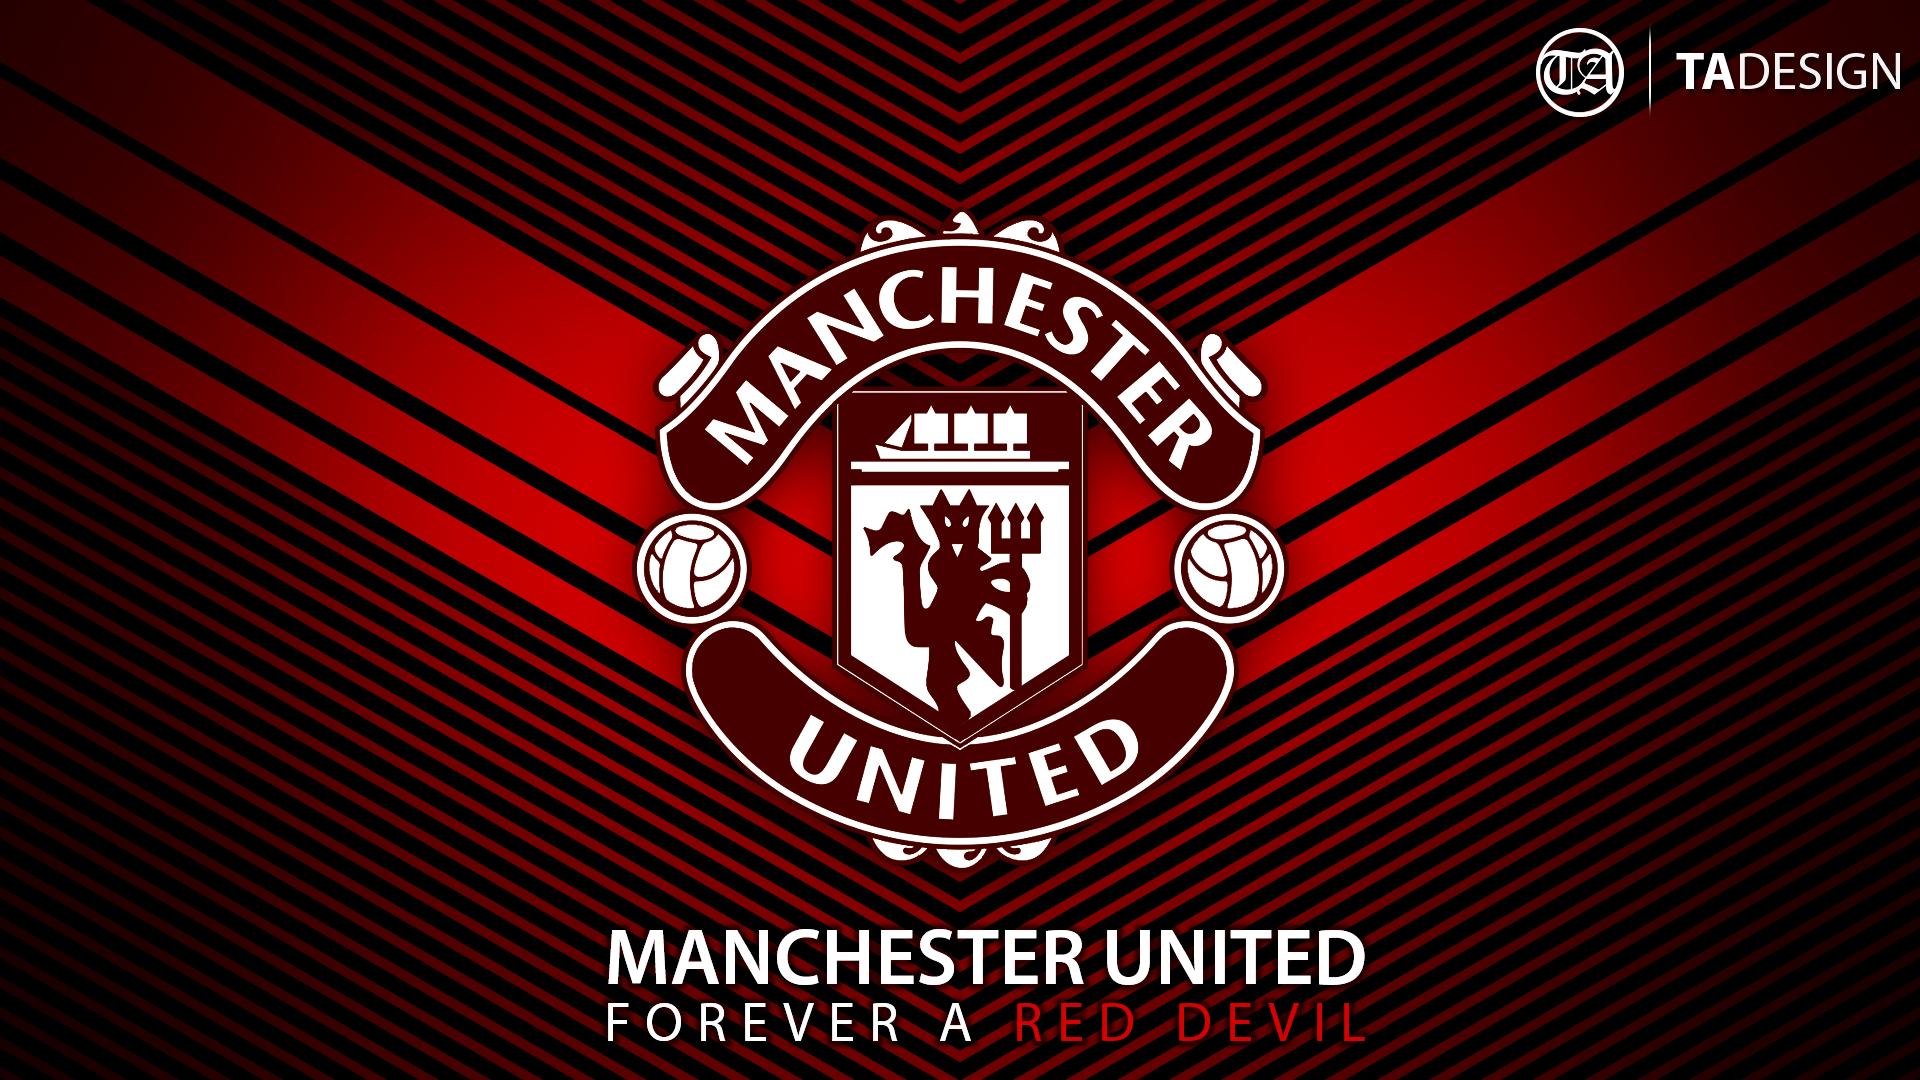 Manchester United Iphone Wallpaper 1920 1080 Wallpapers Man United 48 Wallpapers Adorable Wallpape Manchester United Wallpaper Manchester United The Unit